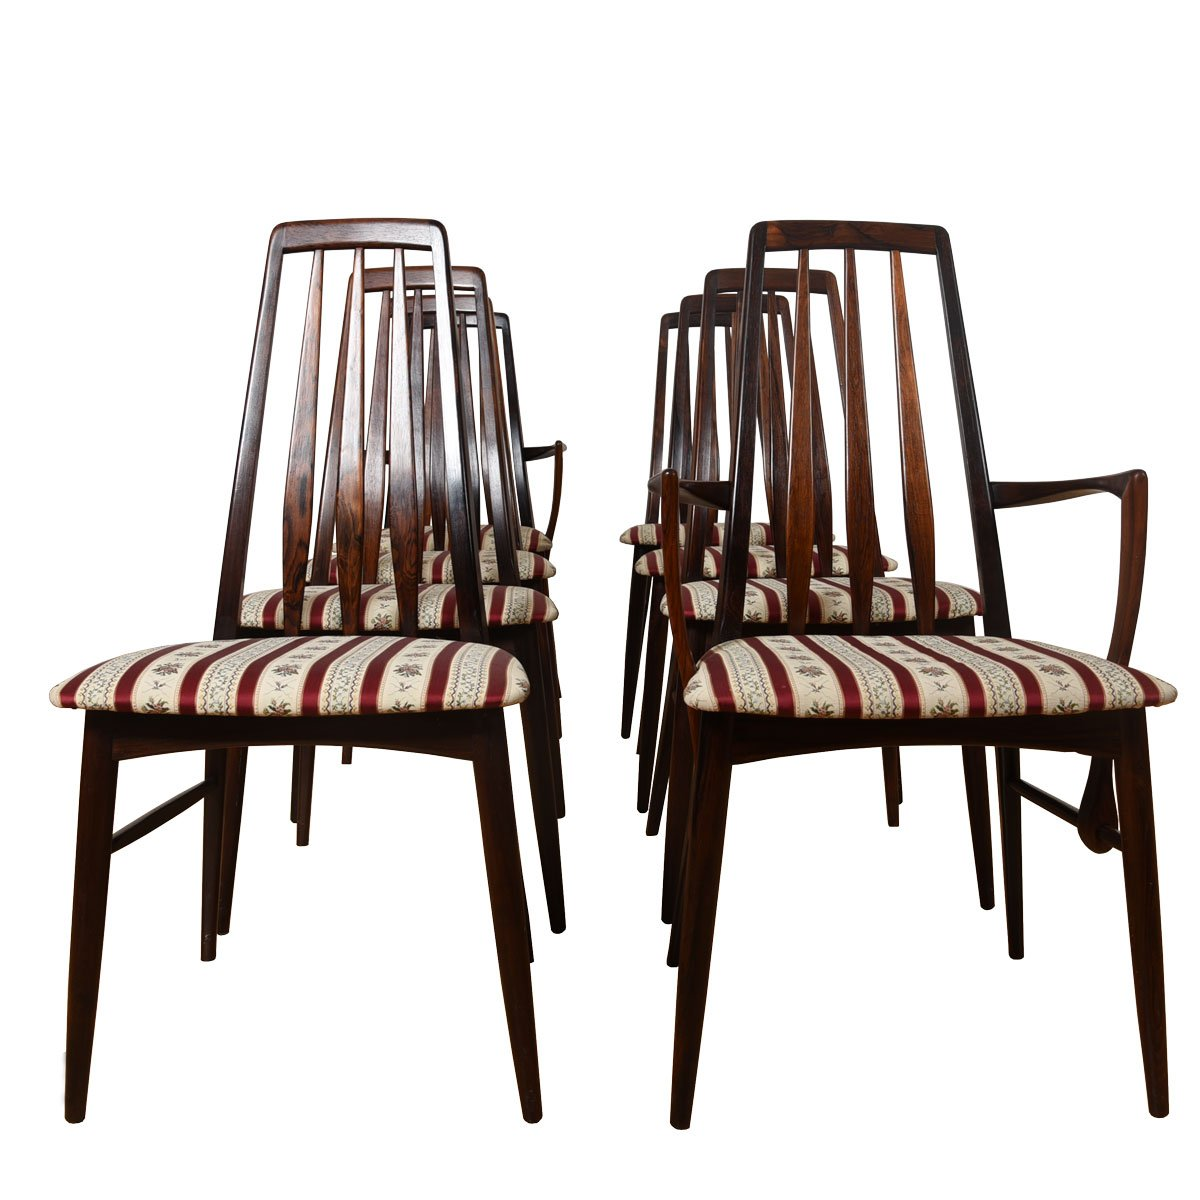 Set of 8 Danish Modern Rosewood Dining Chairs.